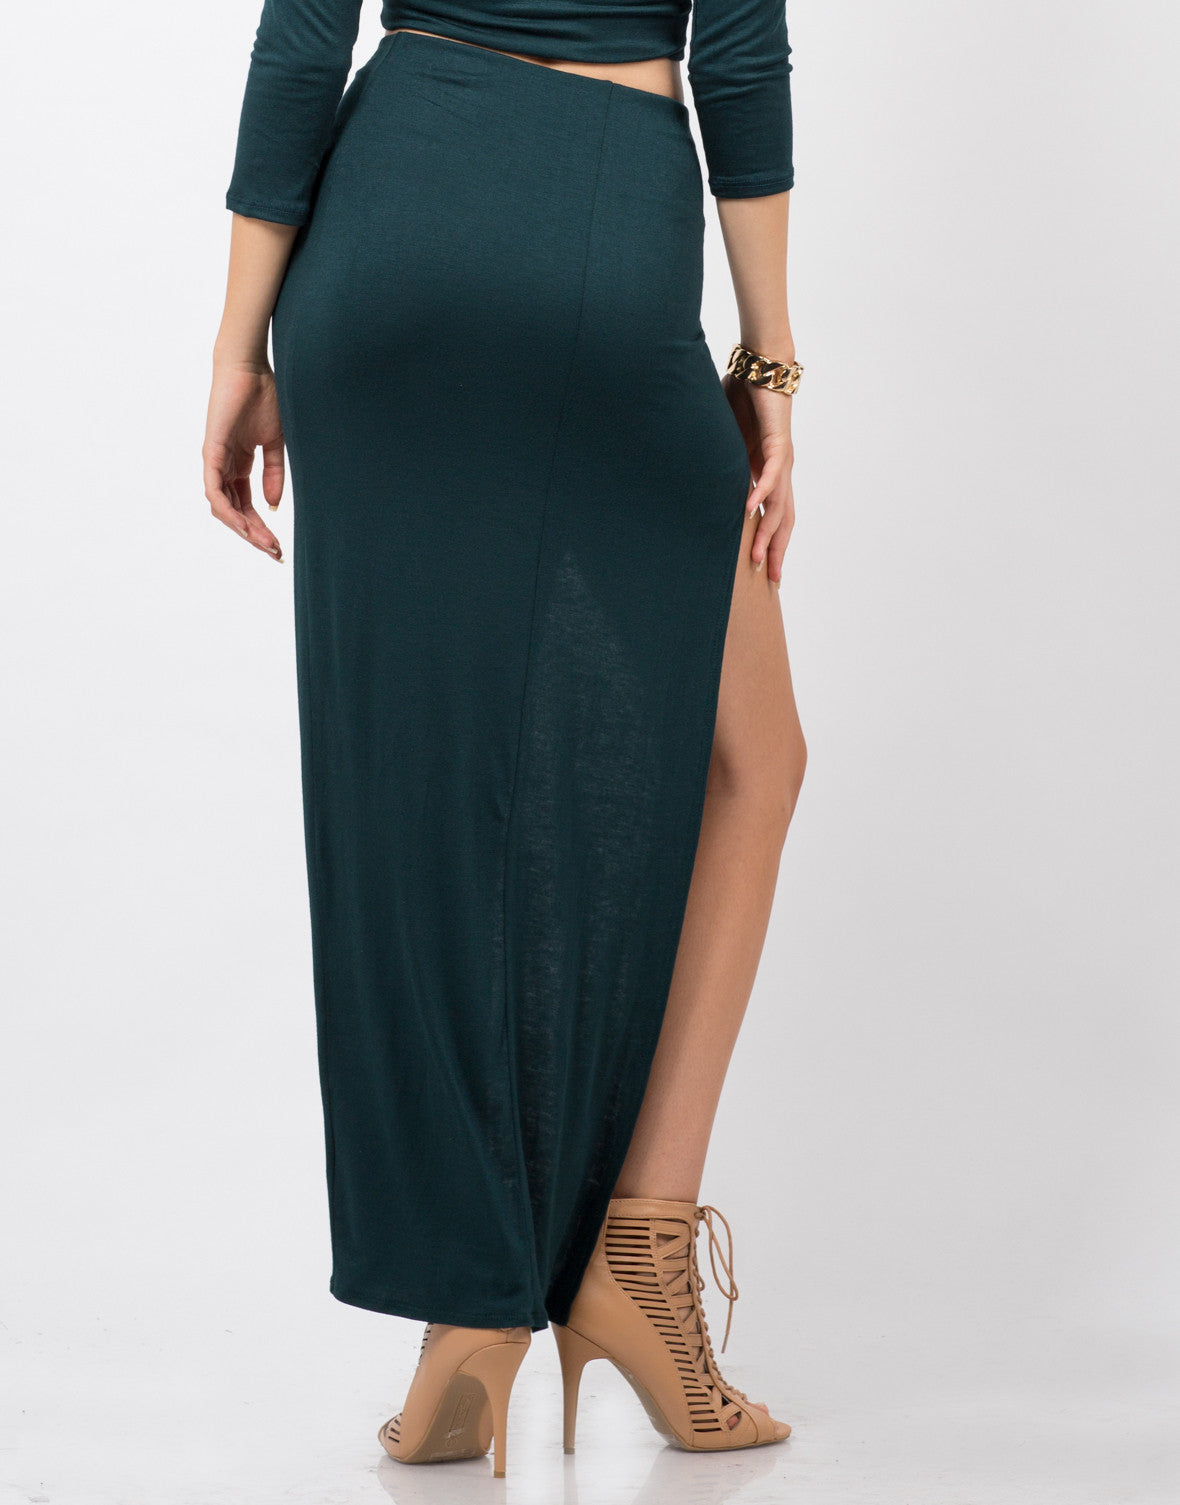 Back View of Dramatic Slit Midi Skirt